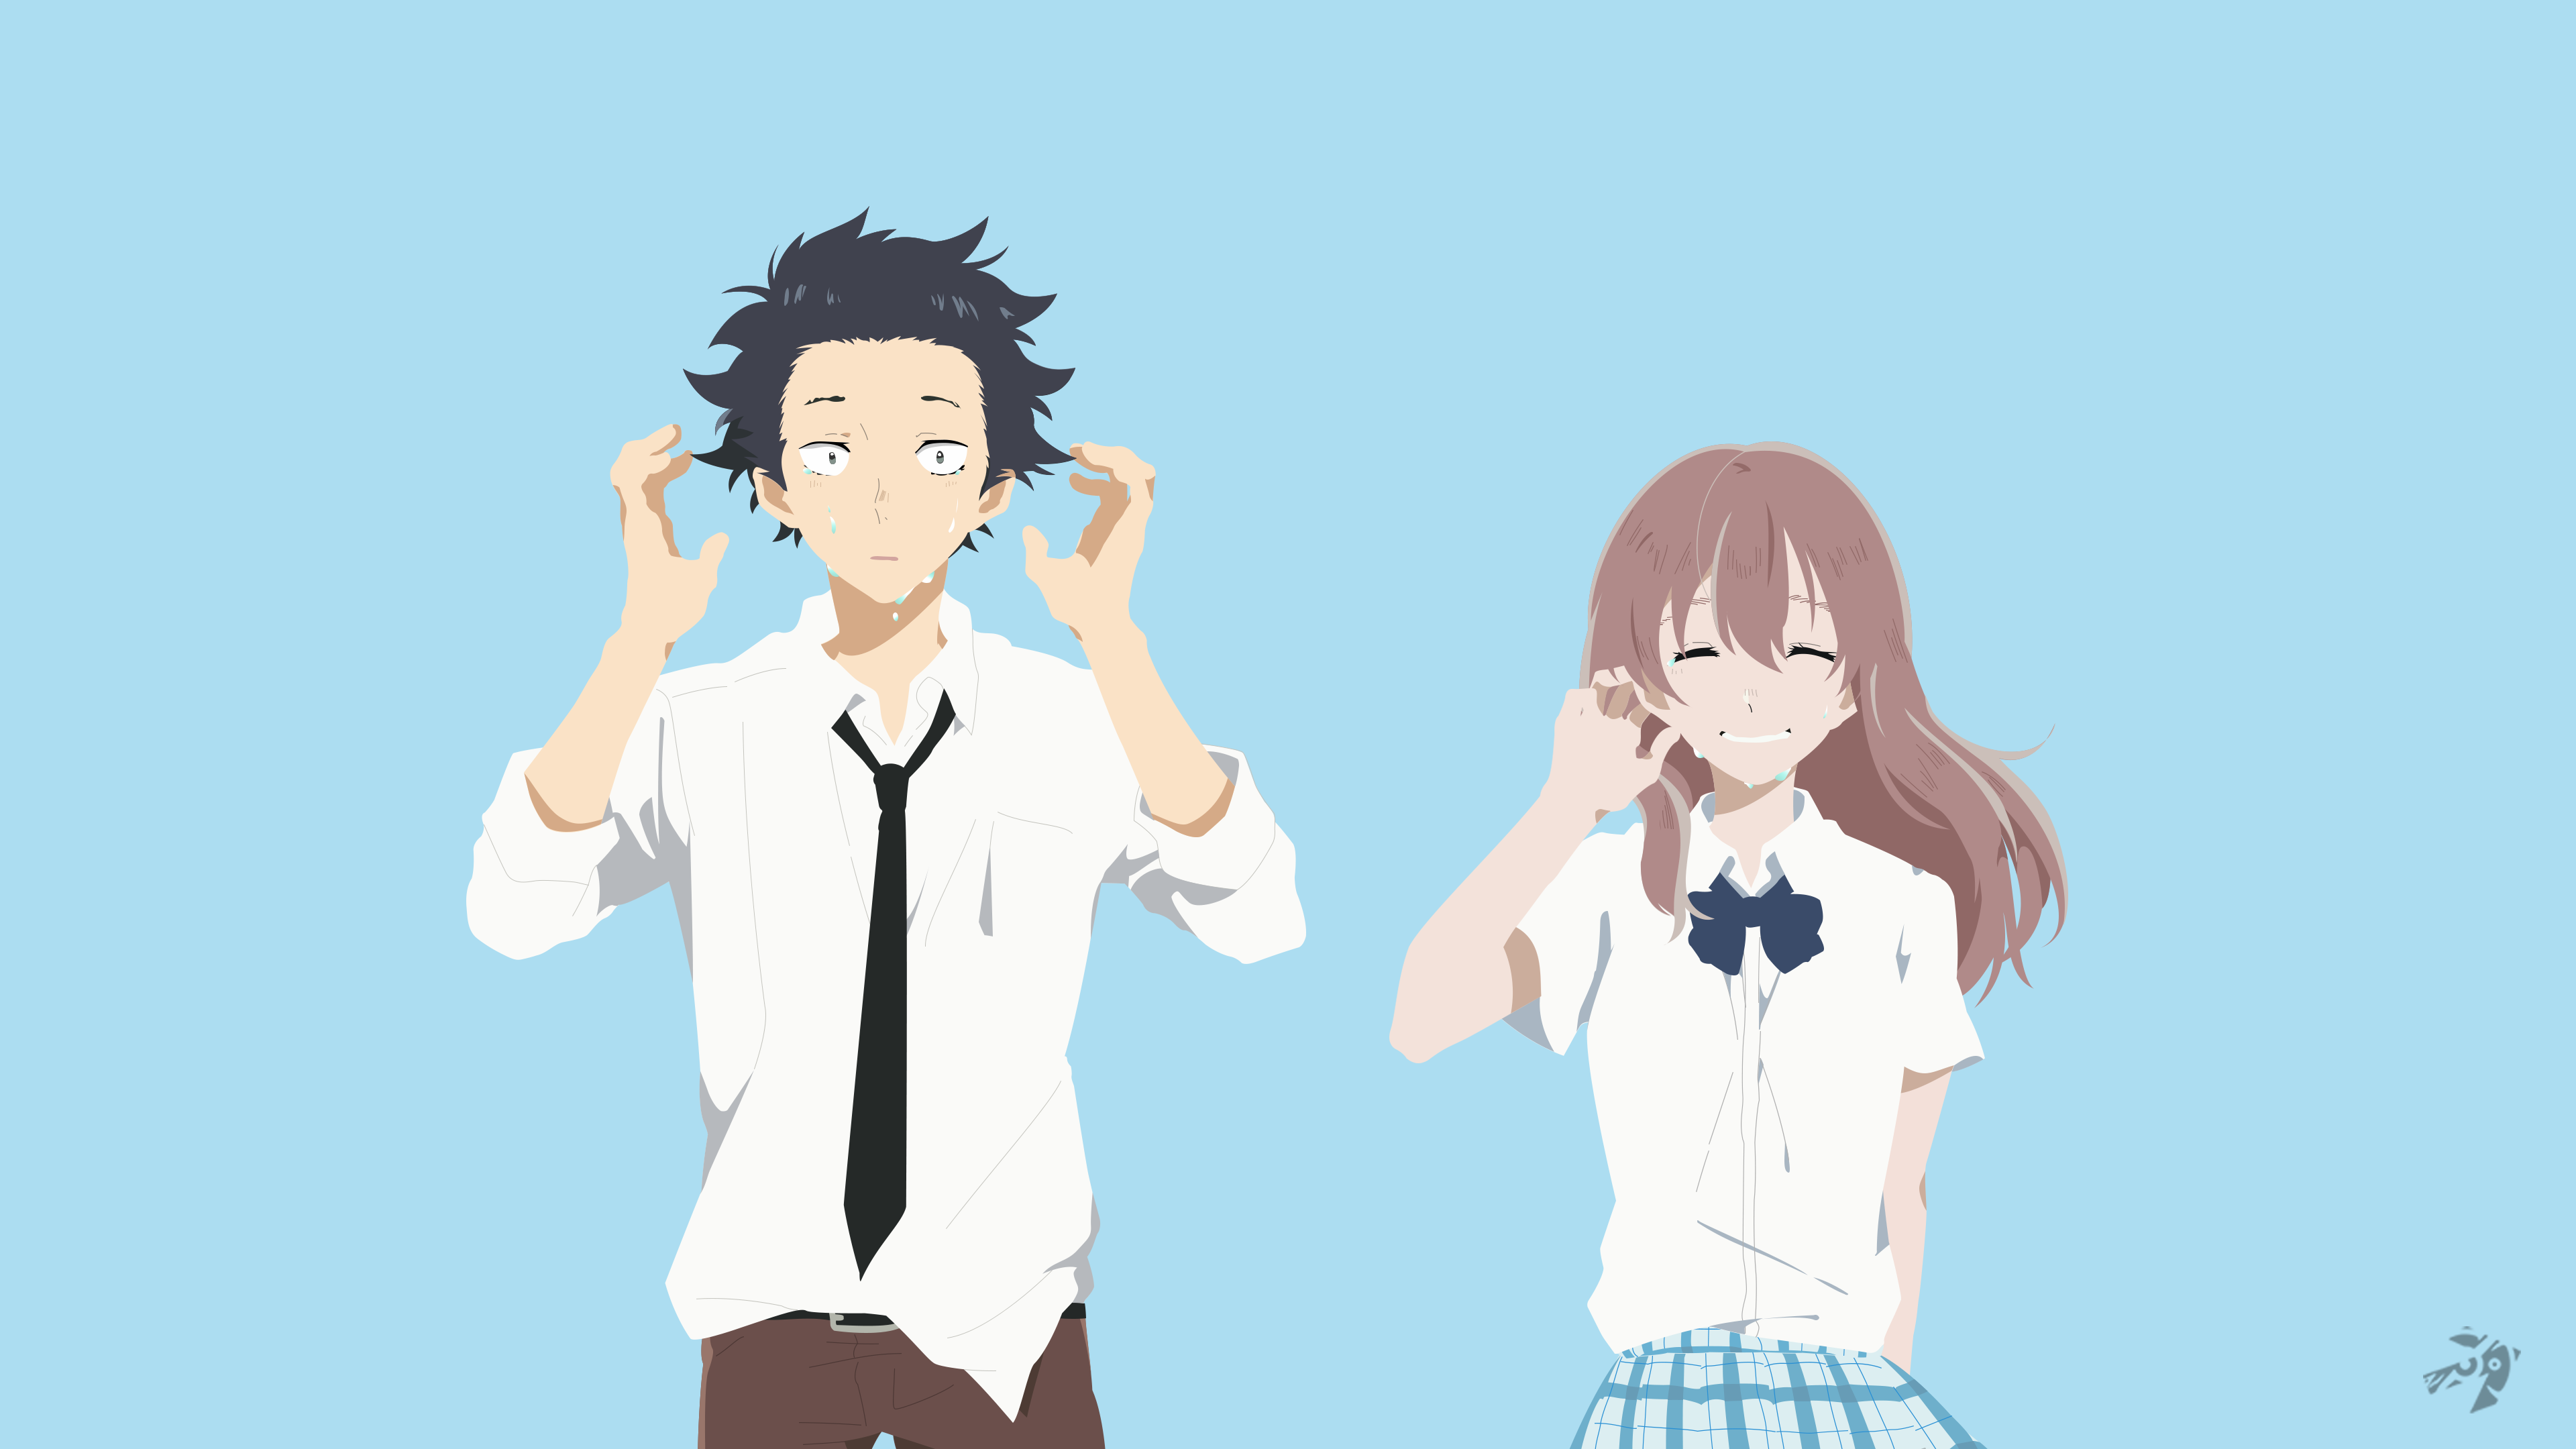 Koe No Katachi 4k Ultra HD Wallpaper and Background